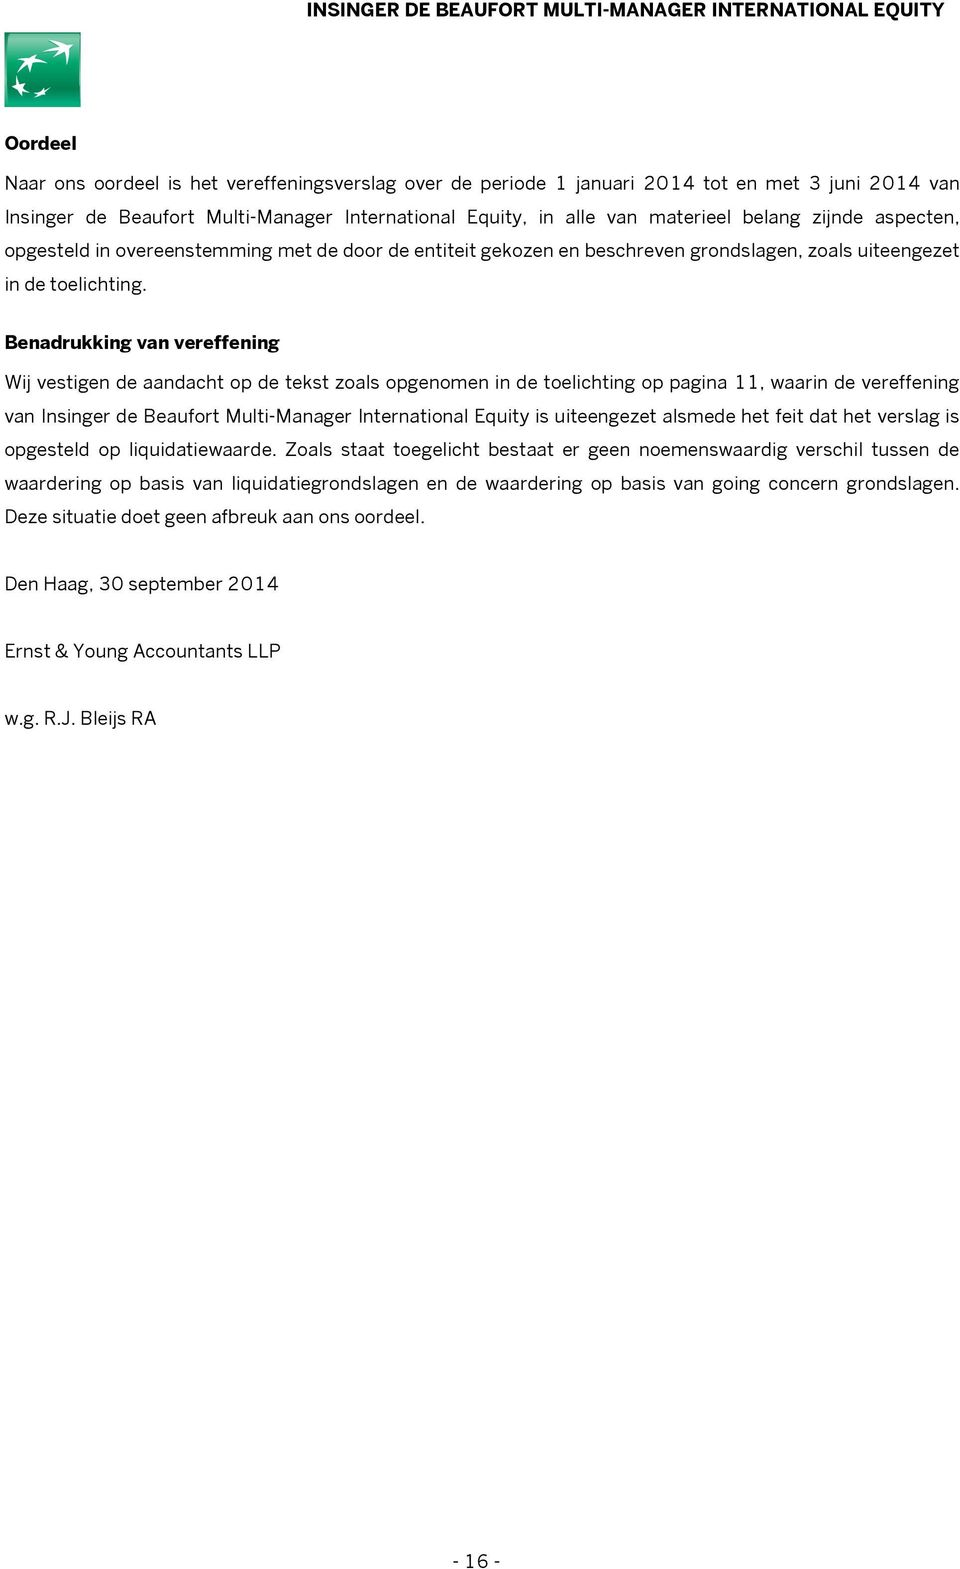 Benadrukking van vereffening Wij vestigen de aandacht op de tekst zoals opgenomen in de toelichting op pagina 11, waarin de vereffening van Insinger de Beaufort Multi-Manager International Equity is